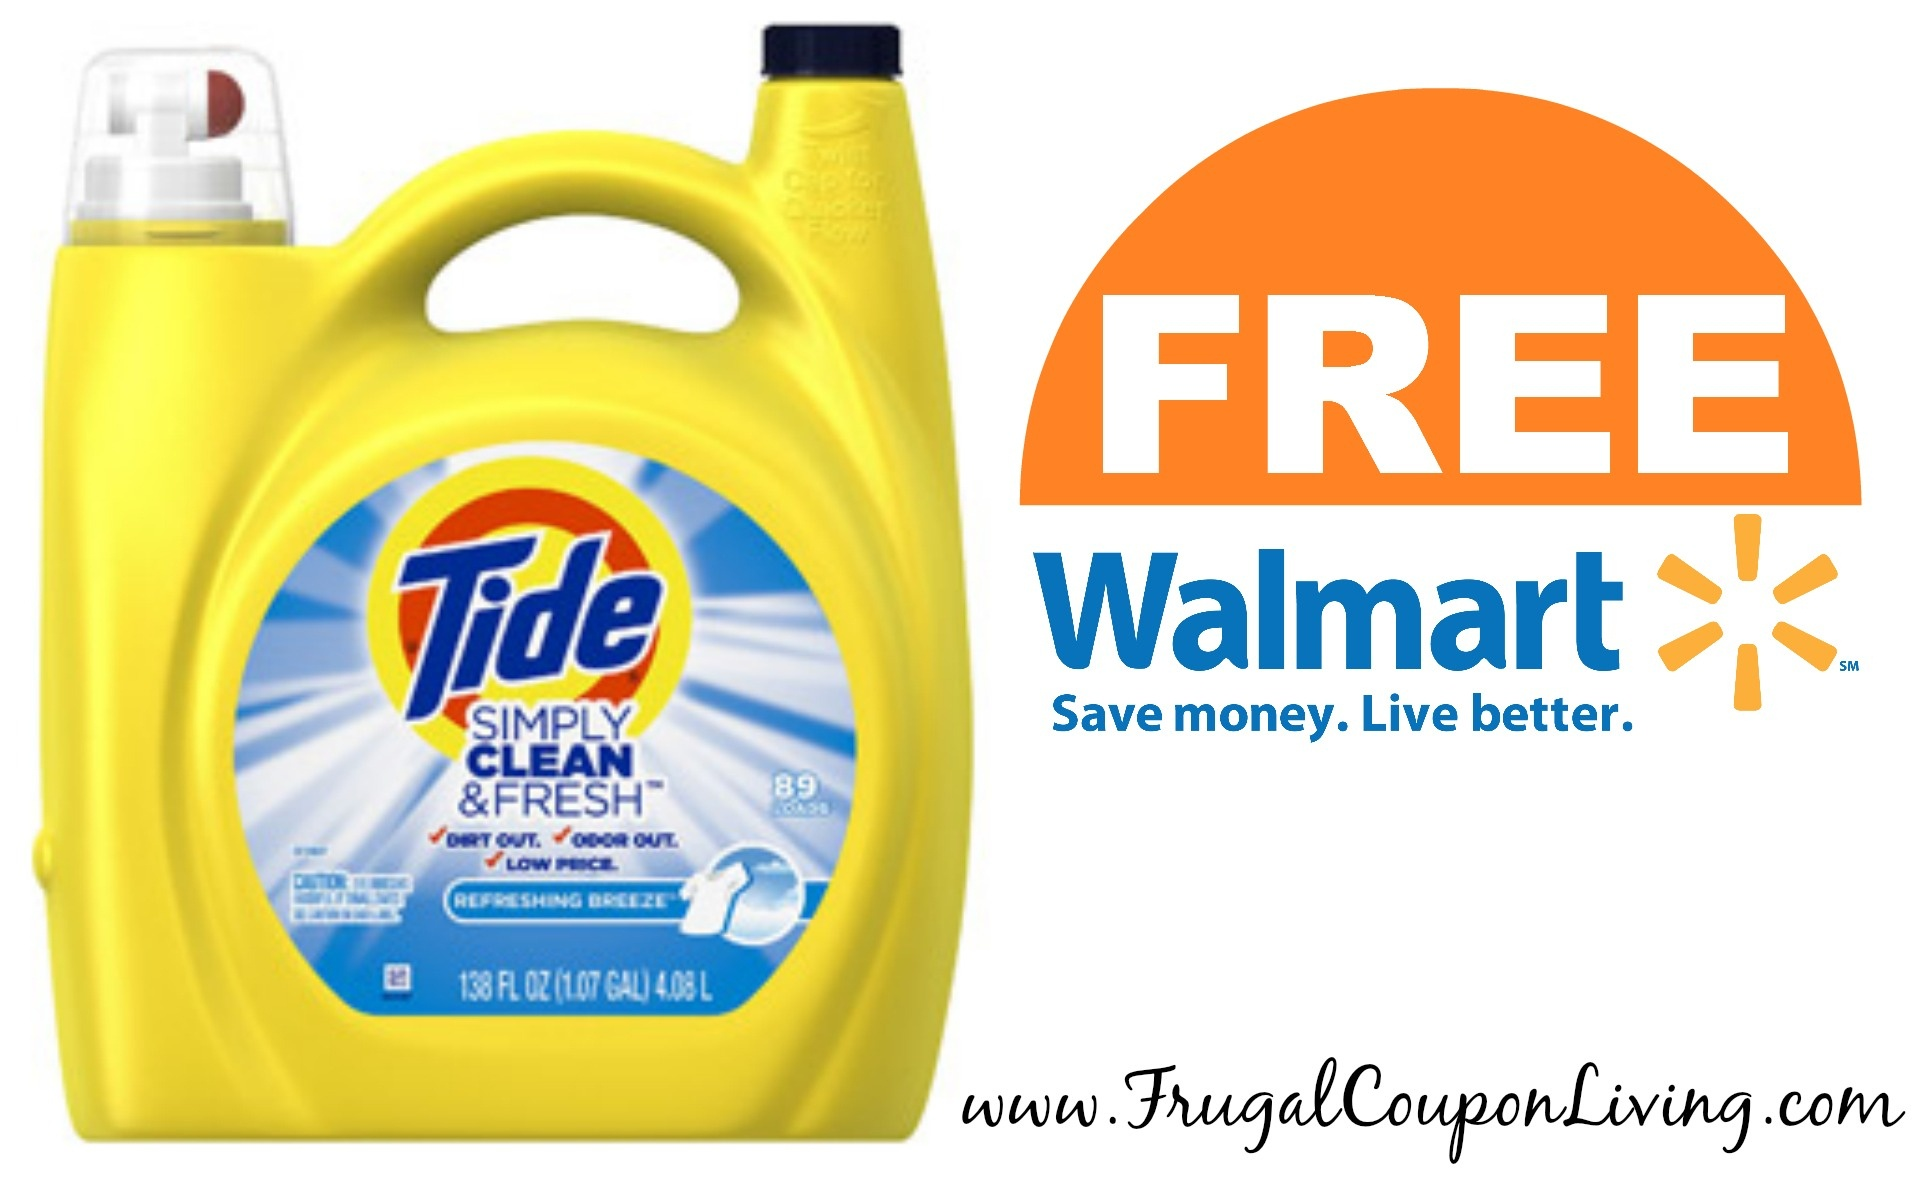 Tide Coupons Detergentdeal Starting At Each Laundry Room Wall Cabinets - Free Printable Tide Simply Coupons